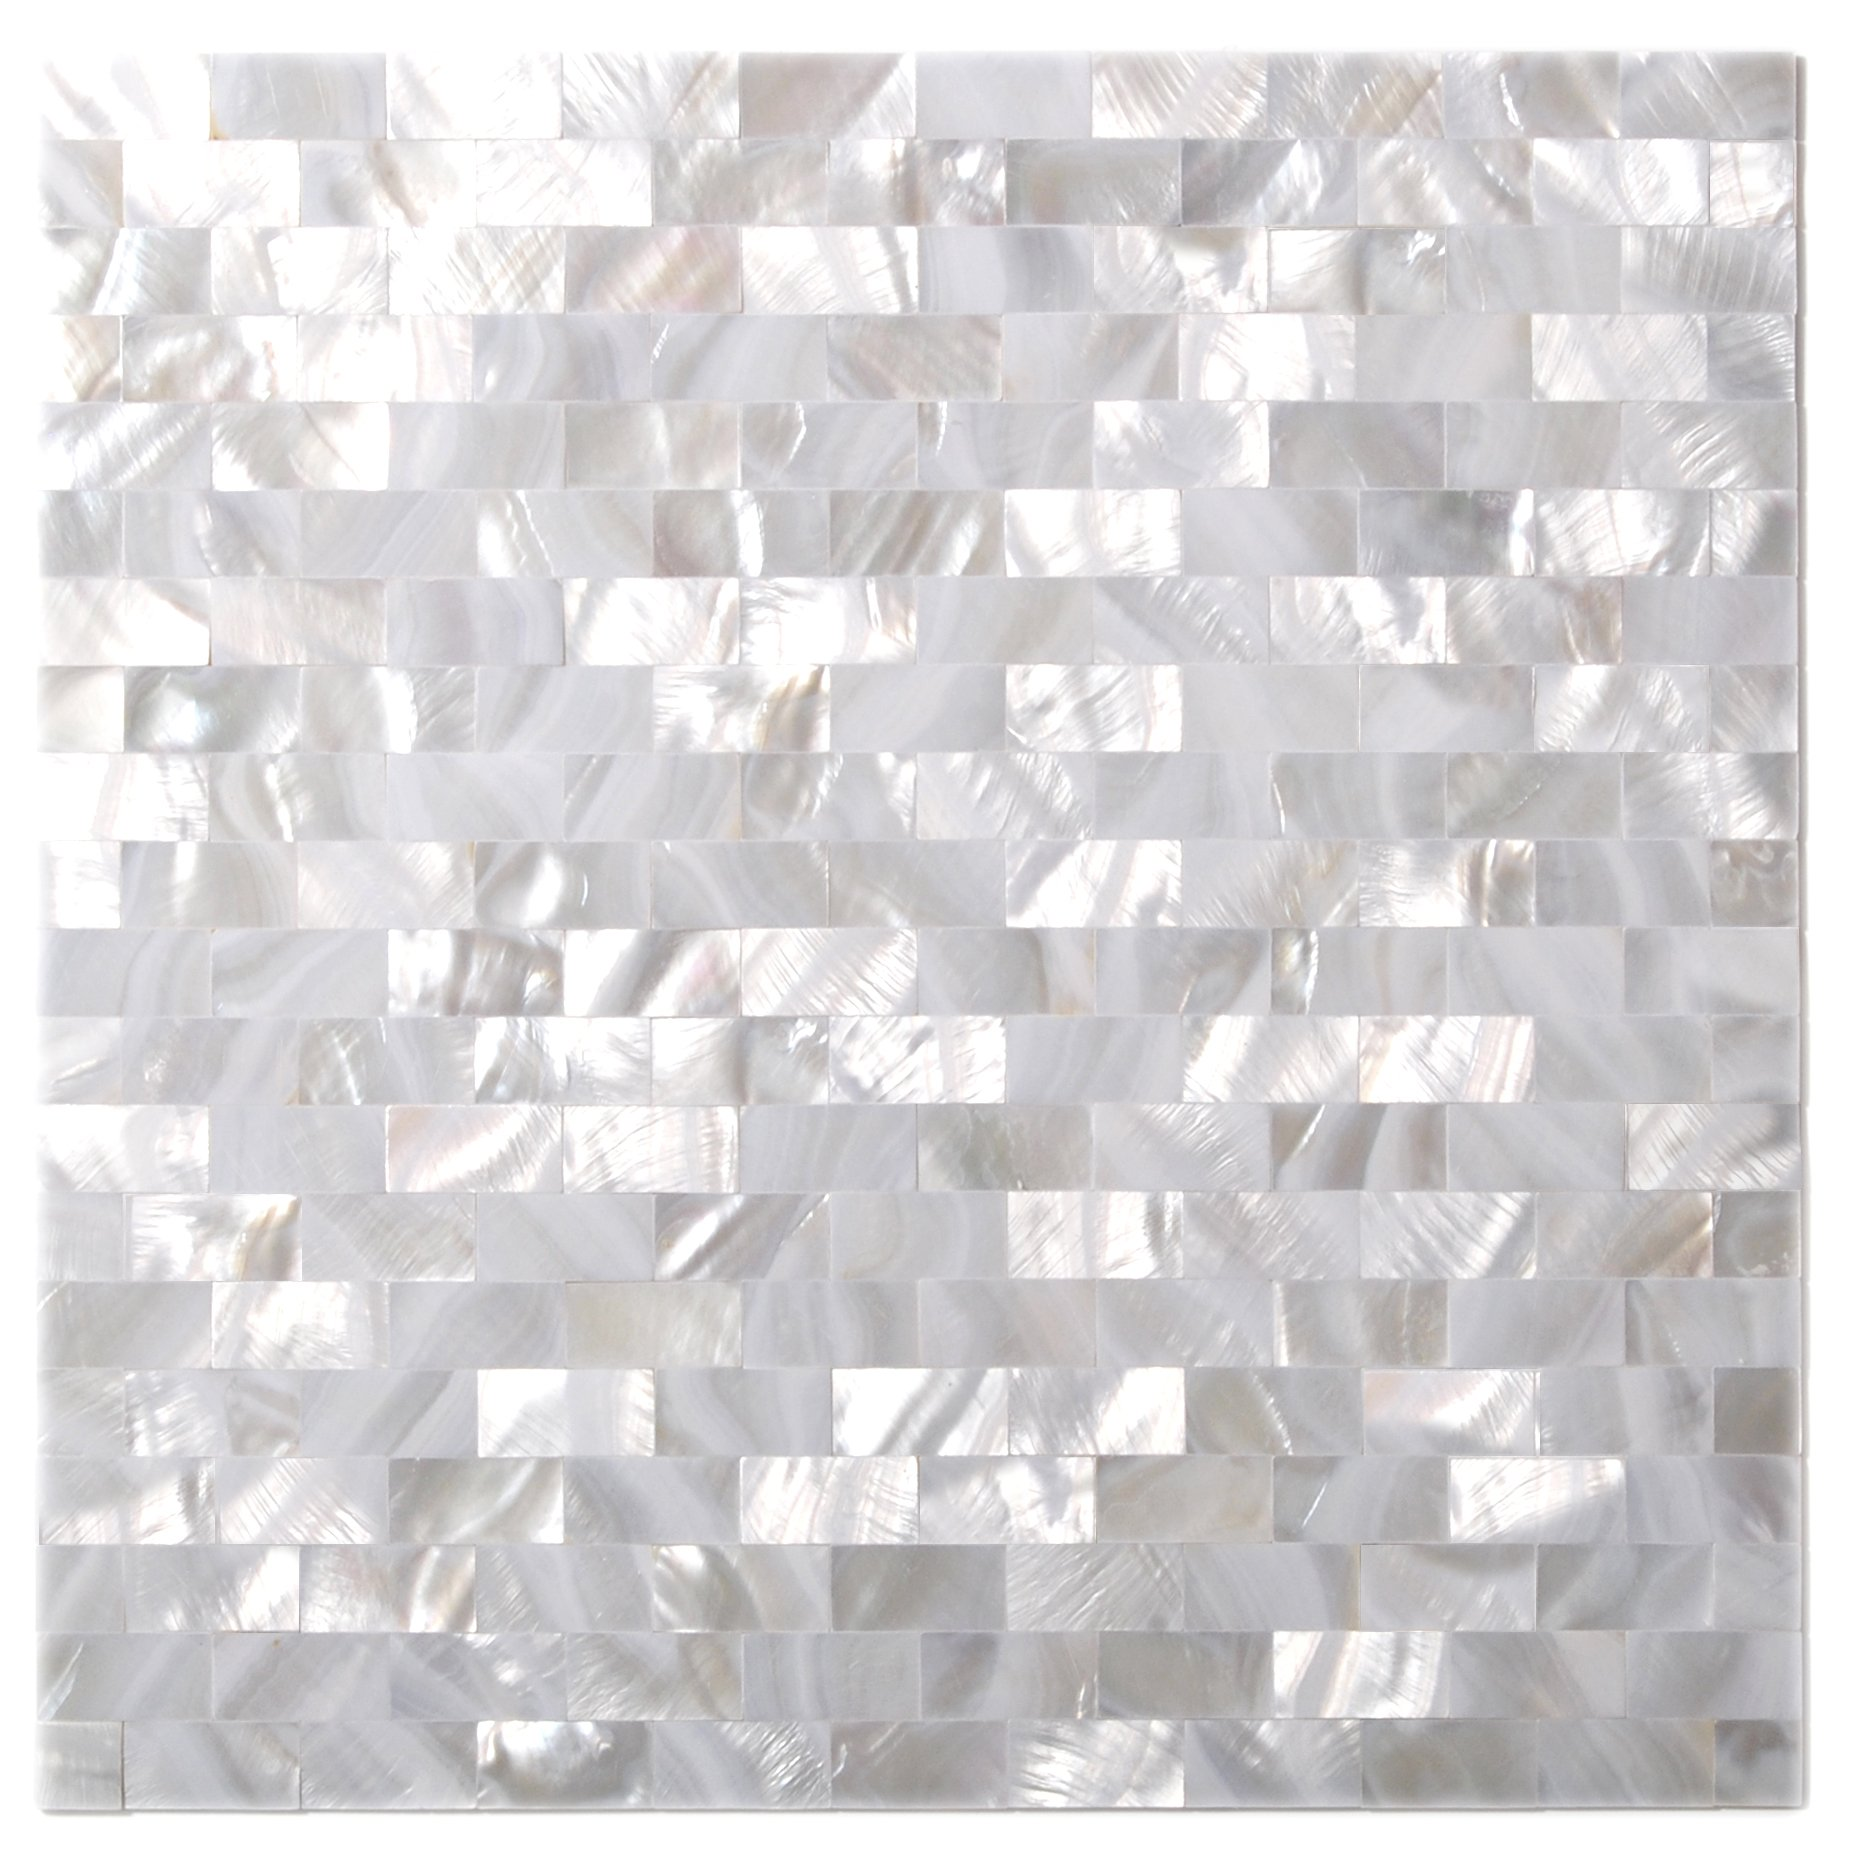 TST MOSAIC TILES Natural Mother Of Pearl Tiles White Subway Seamless 15 x 30 mm Chips-2mm Thick Mesh Mounted-Kitchen Backsplash Bath Wall Borders Art Mosaic Shell Tiles MOP02 (5 Square Feet)